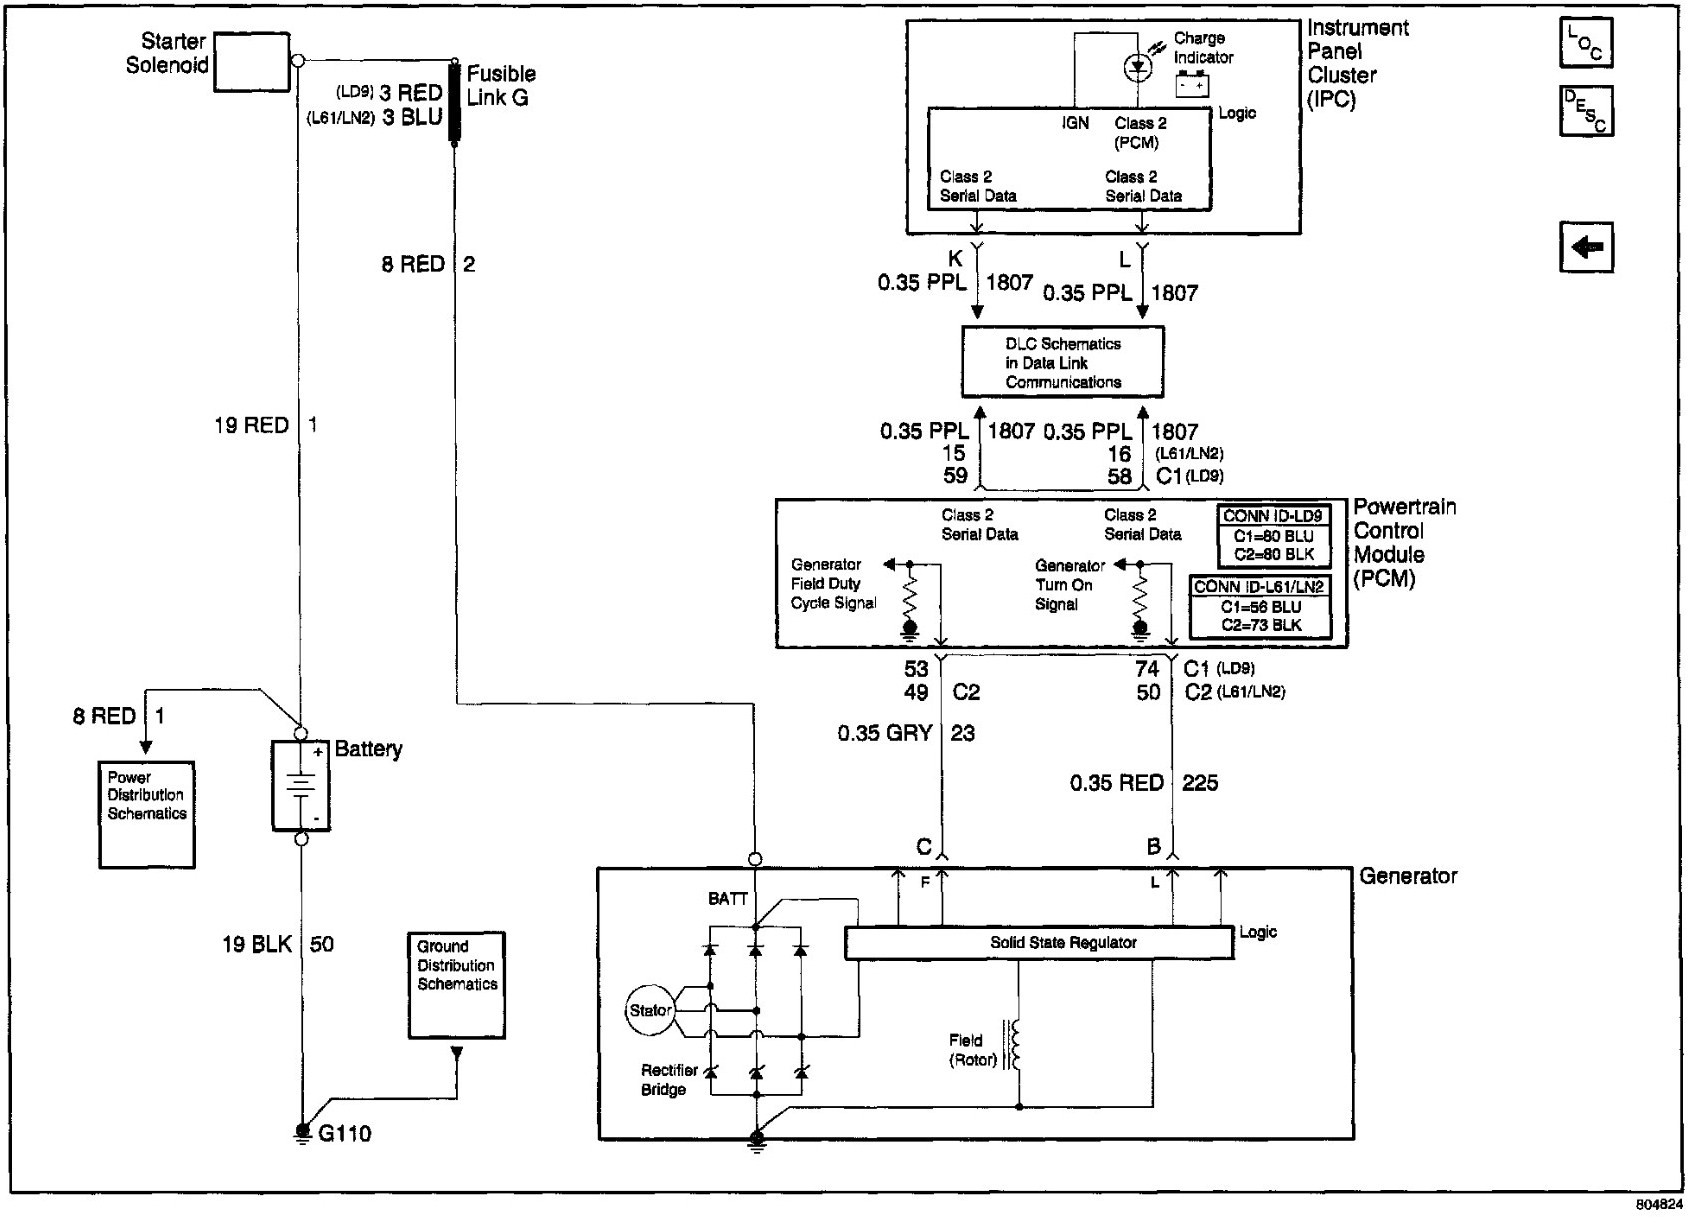 Chevy Cavalier Engine Diagram Chevy Cavalier Charging System Putting Out Around Volts if It Has